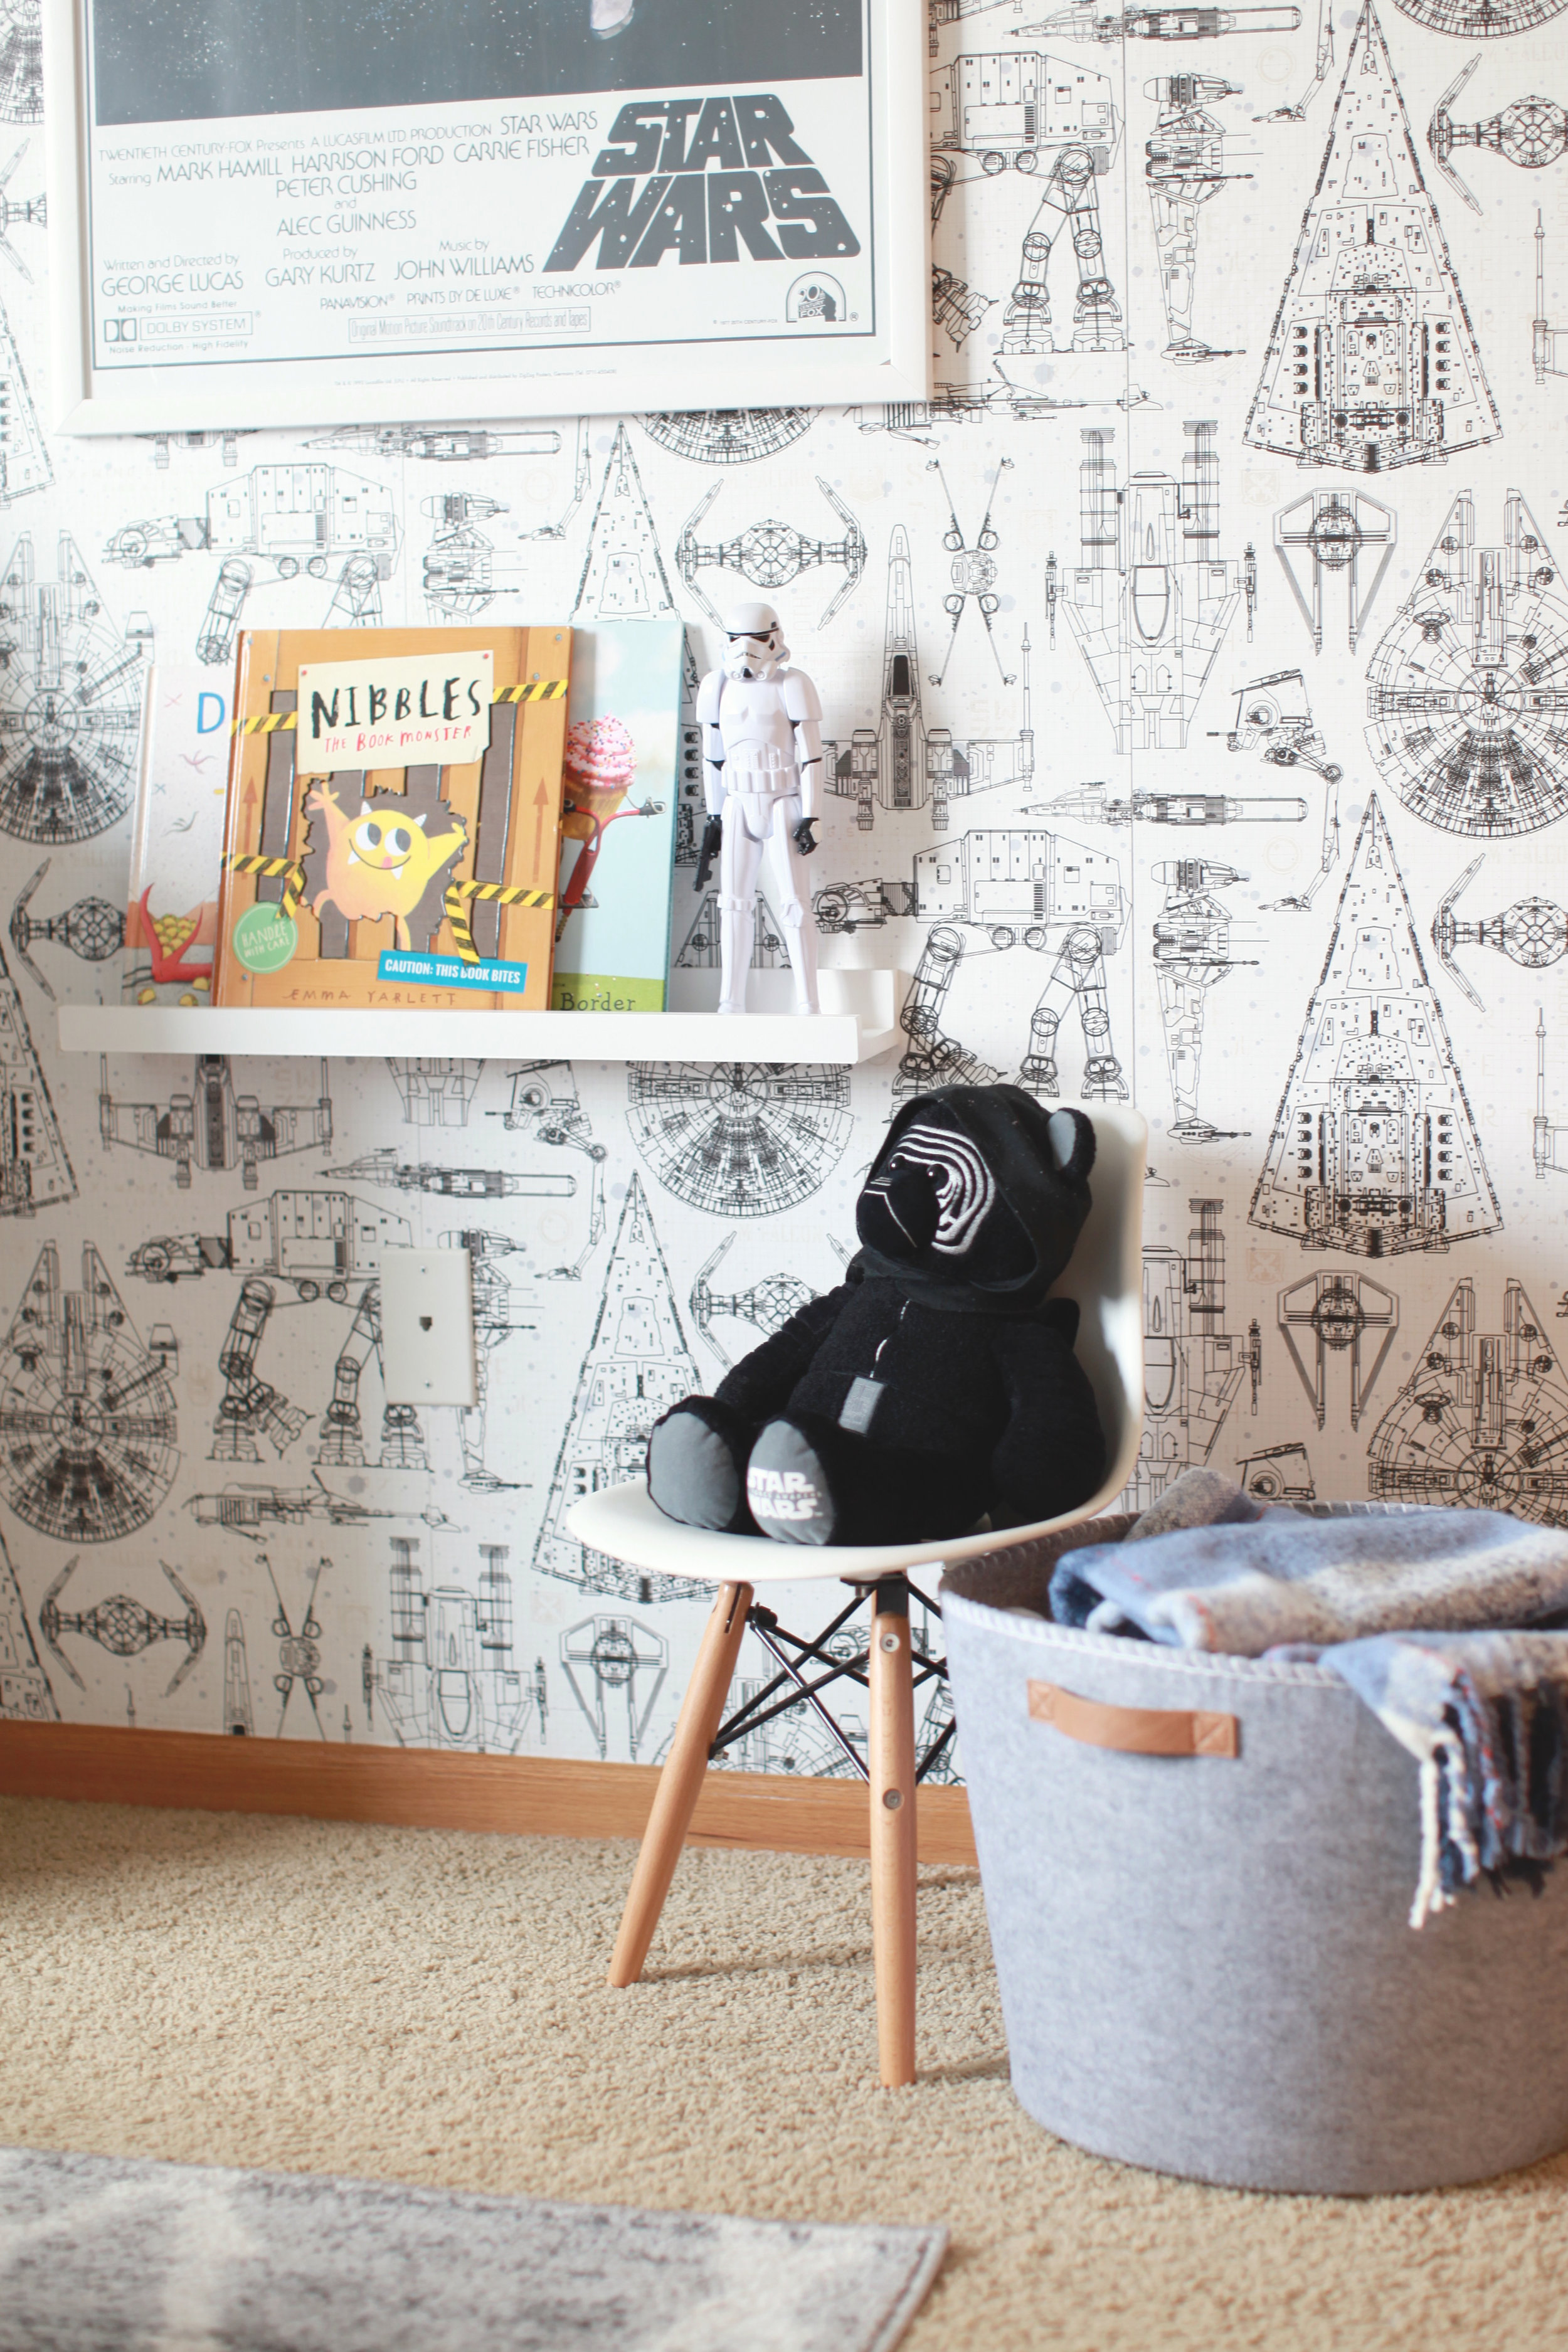 """Miles loves to read and has always wanted to have """"his books"""" in his room so making this shelf for him was fun - I knew he would love it."""